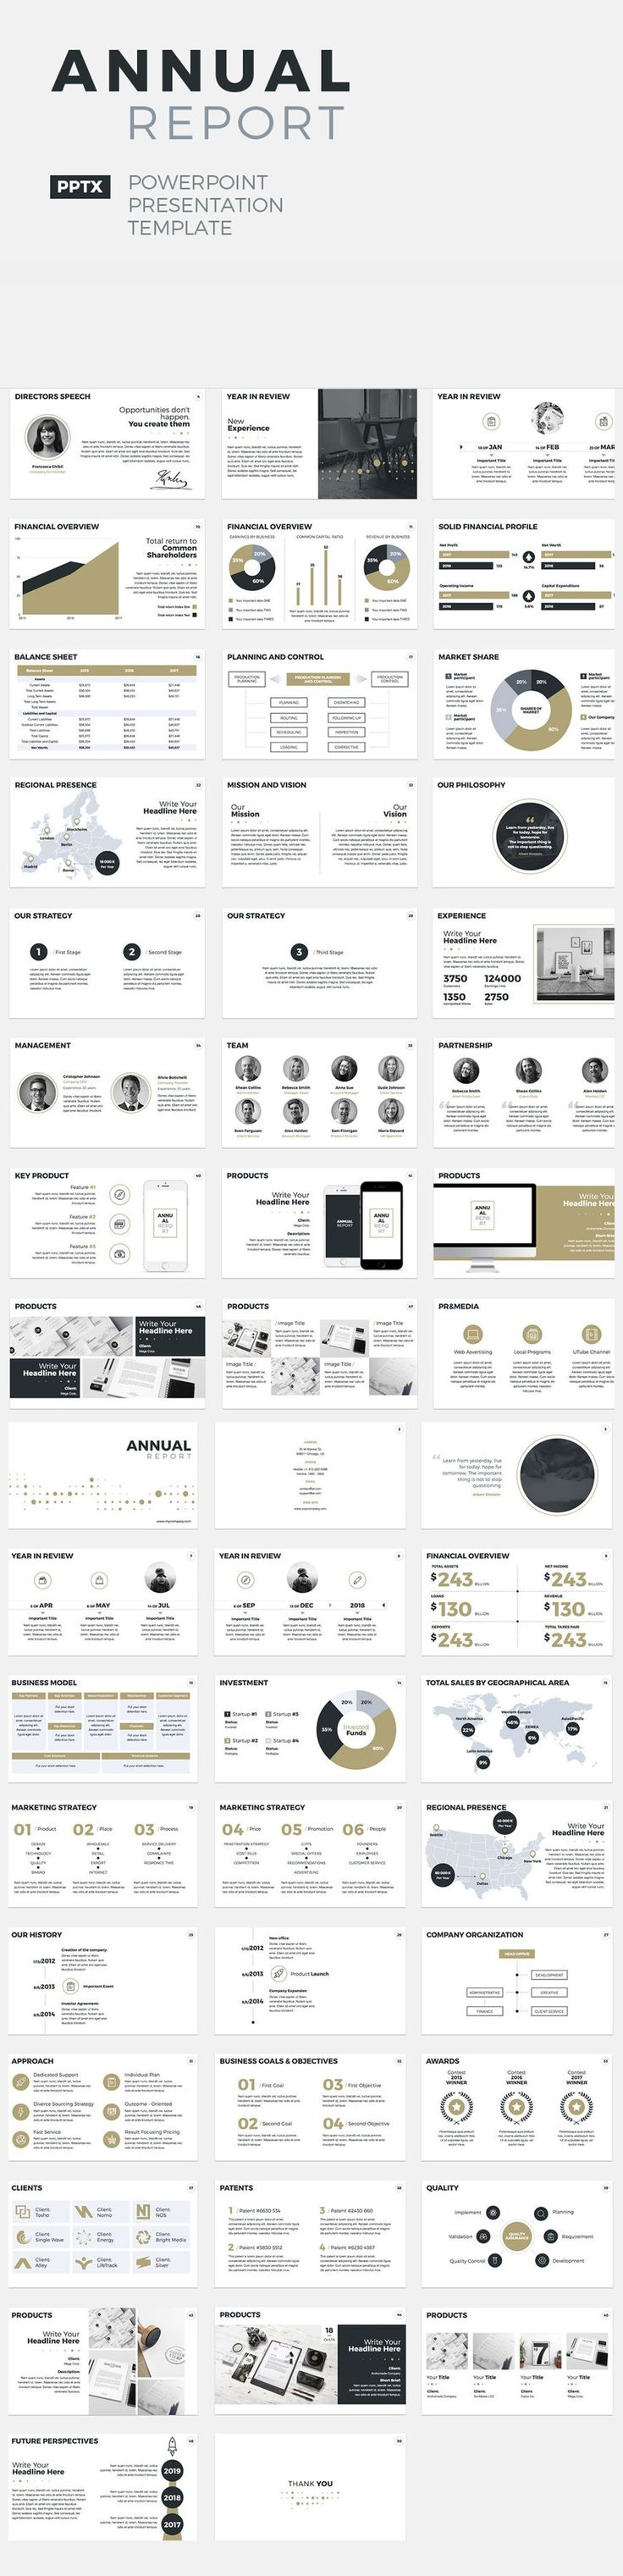 Annual Report - PowerPoint Presentation Template